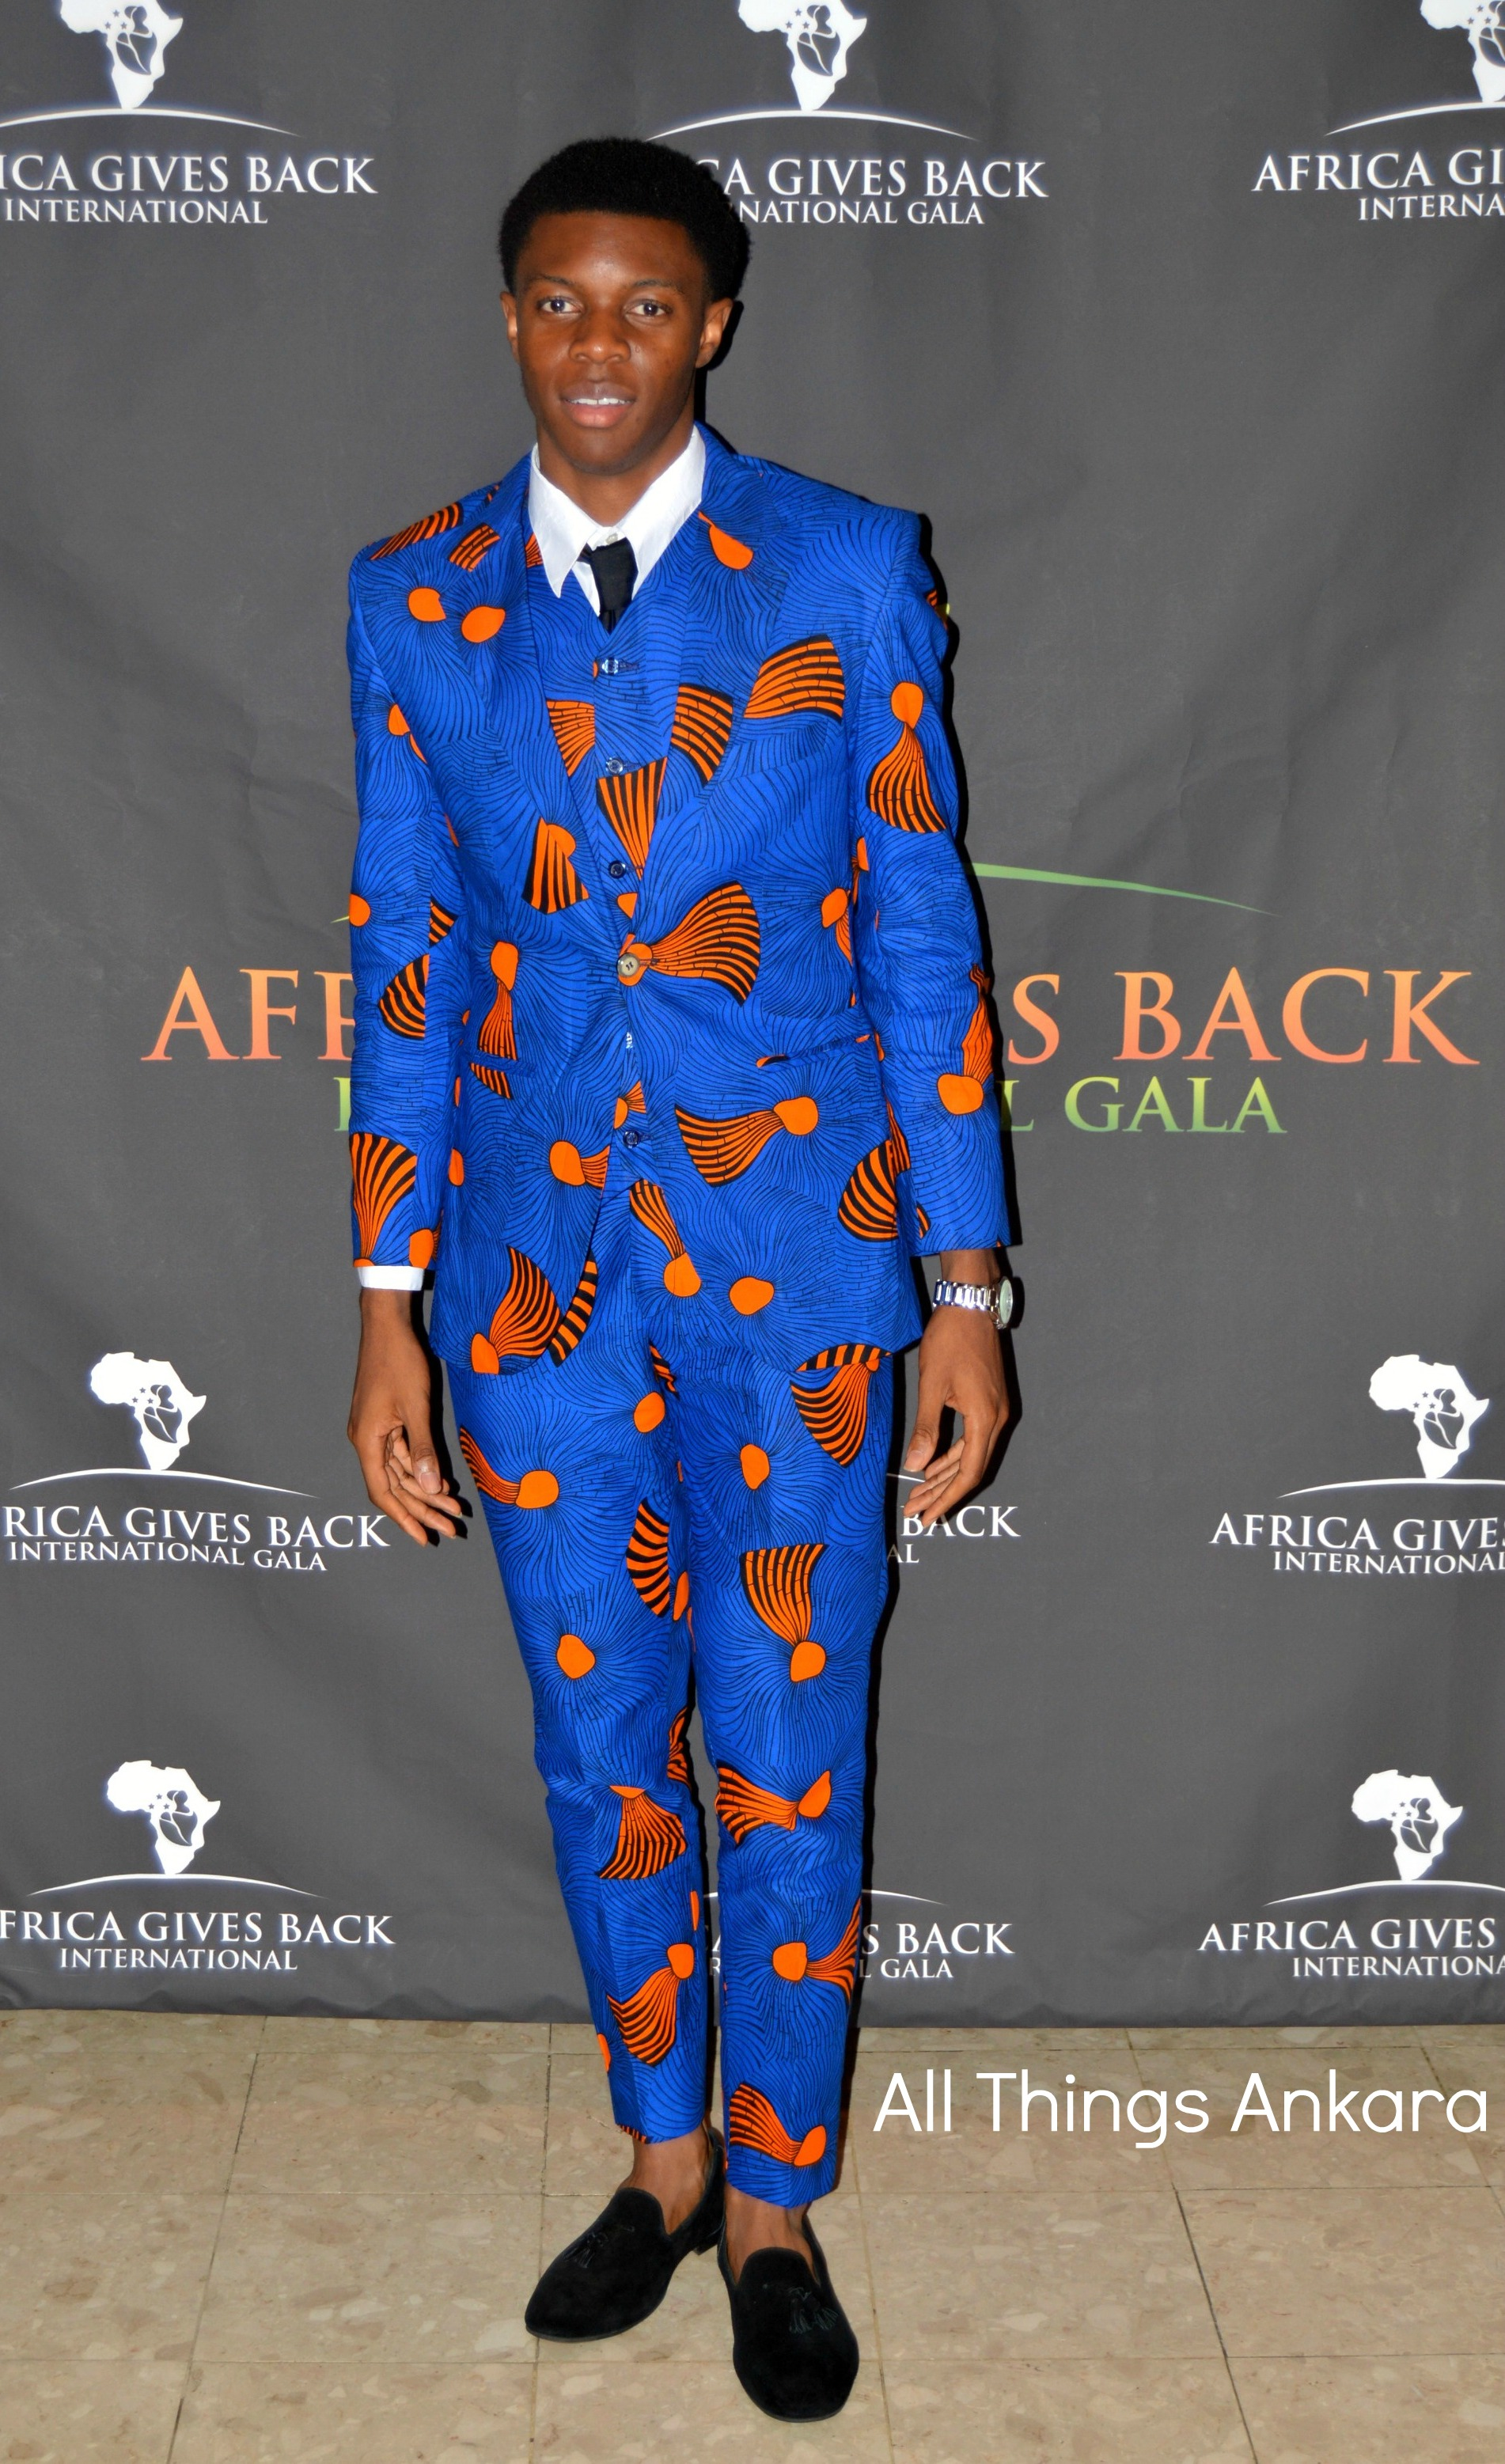 Gala-All Things Ankara's Best Dressed Men at Africa Gives Back International Gala 2016 3